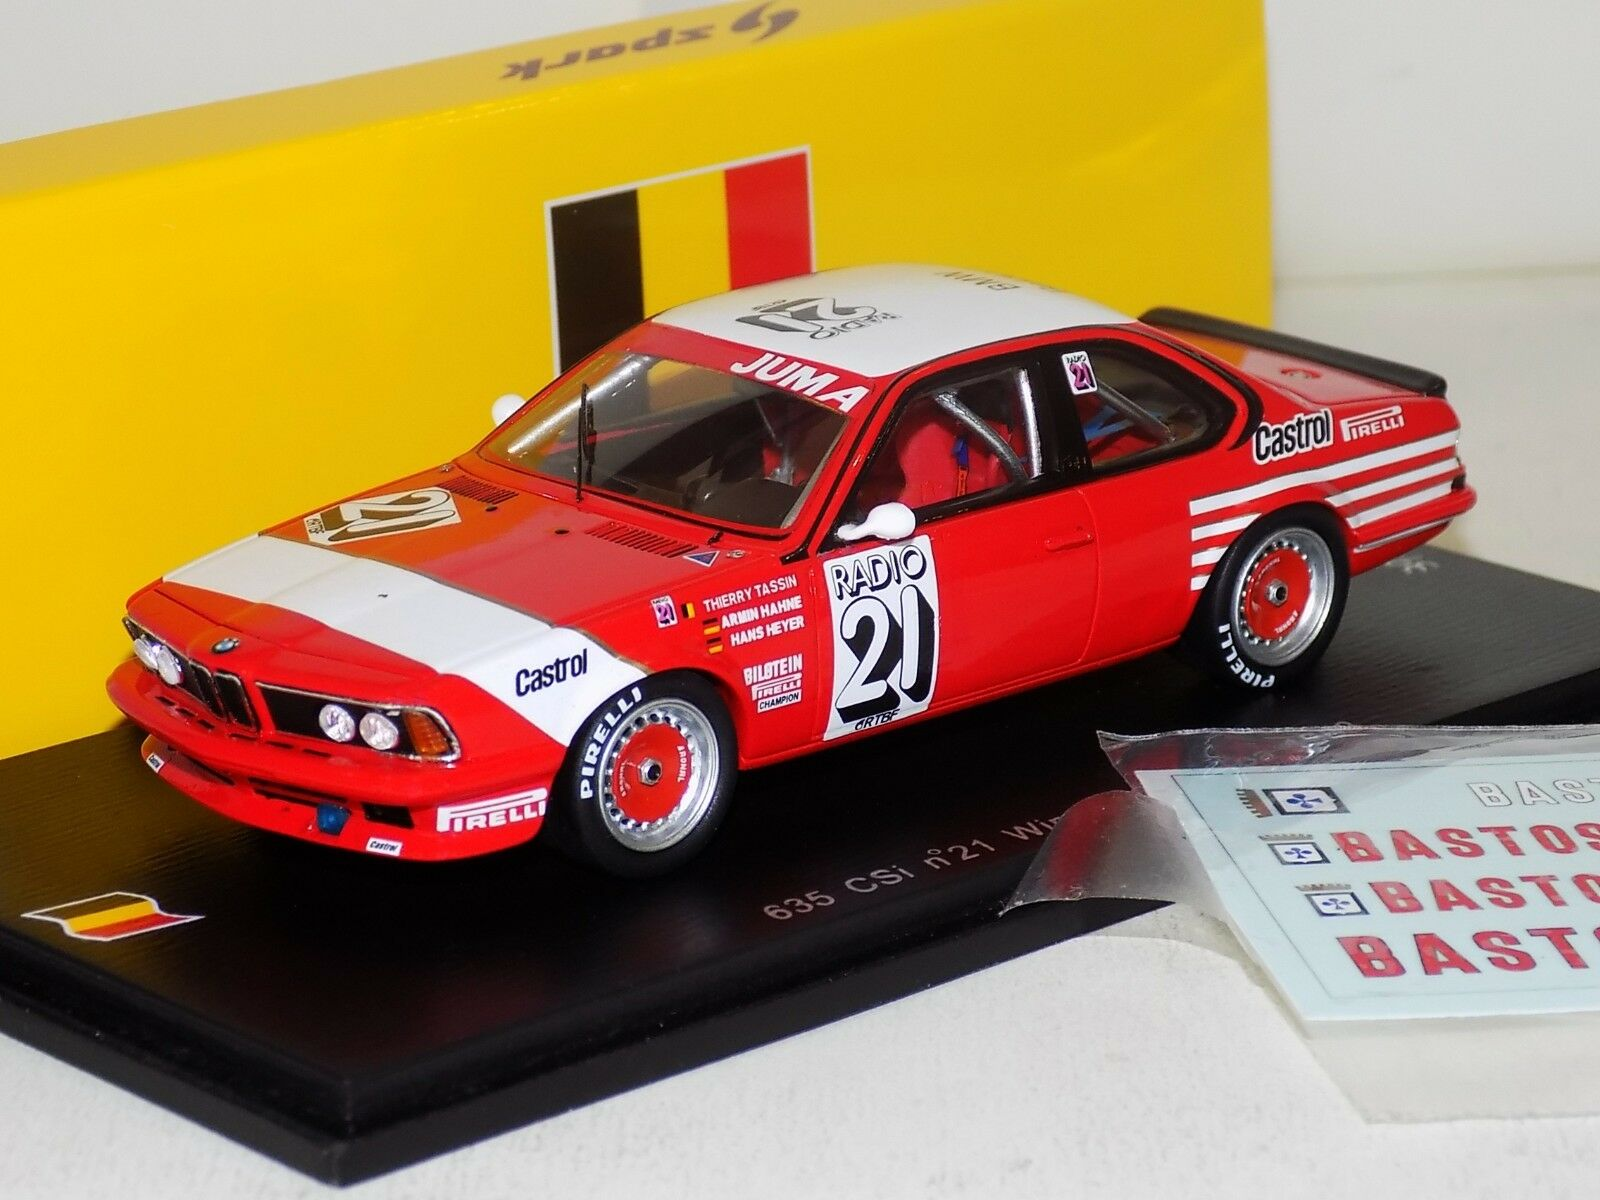 BMW 635 CSi  21 WINNER SPA 1983 TASSIN HAHNE HEYER SPARK LIM. SB064 1 43